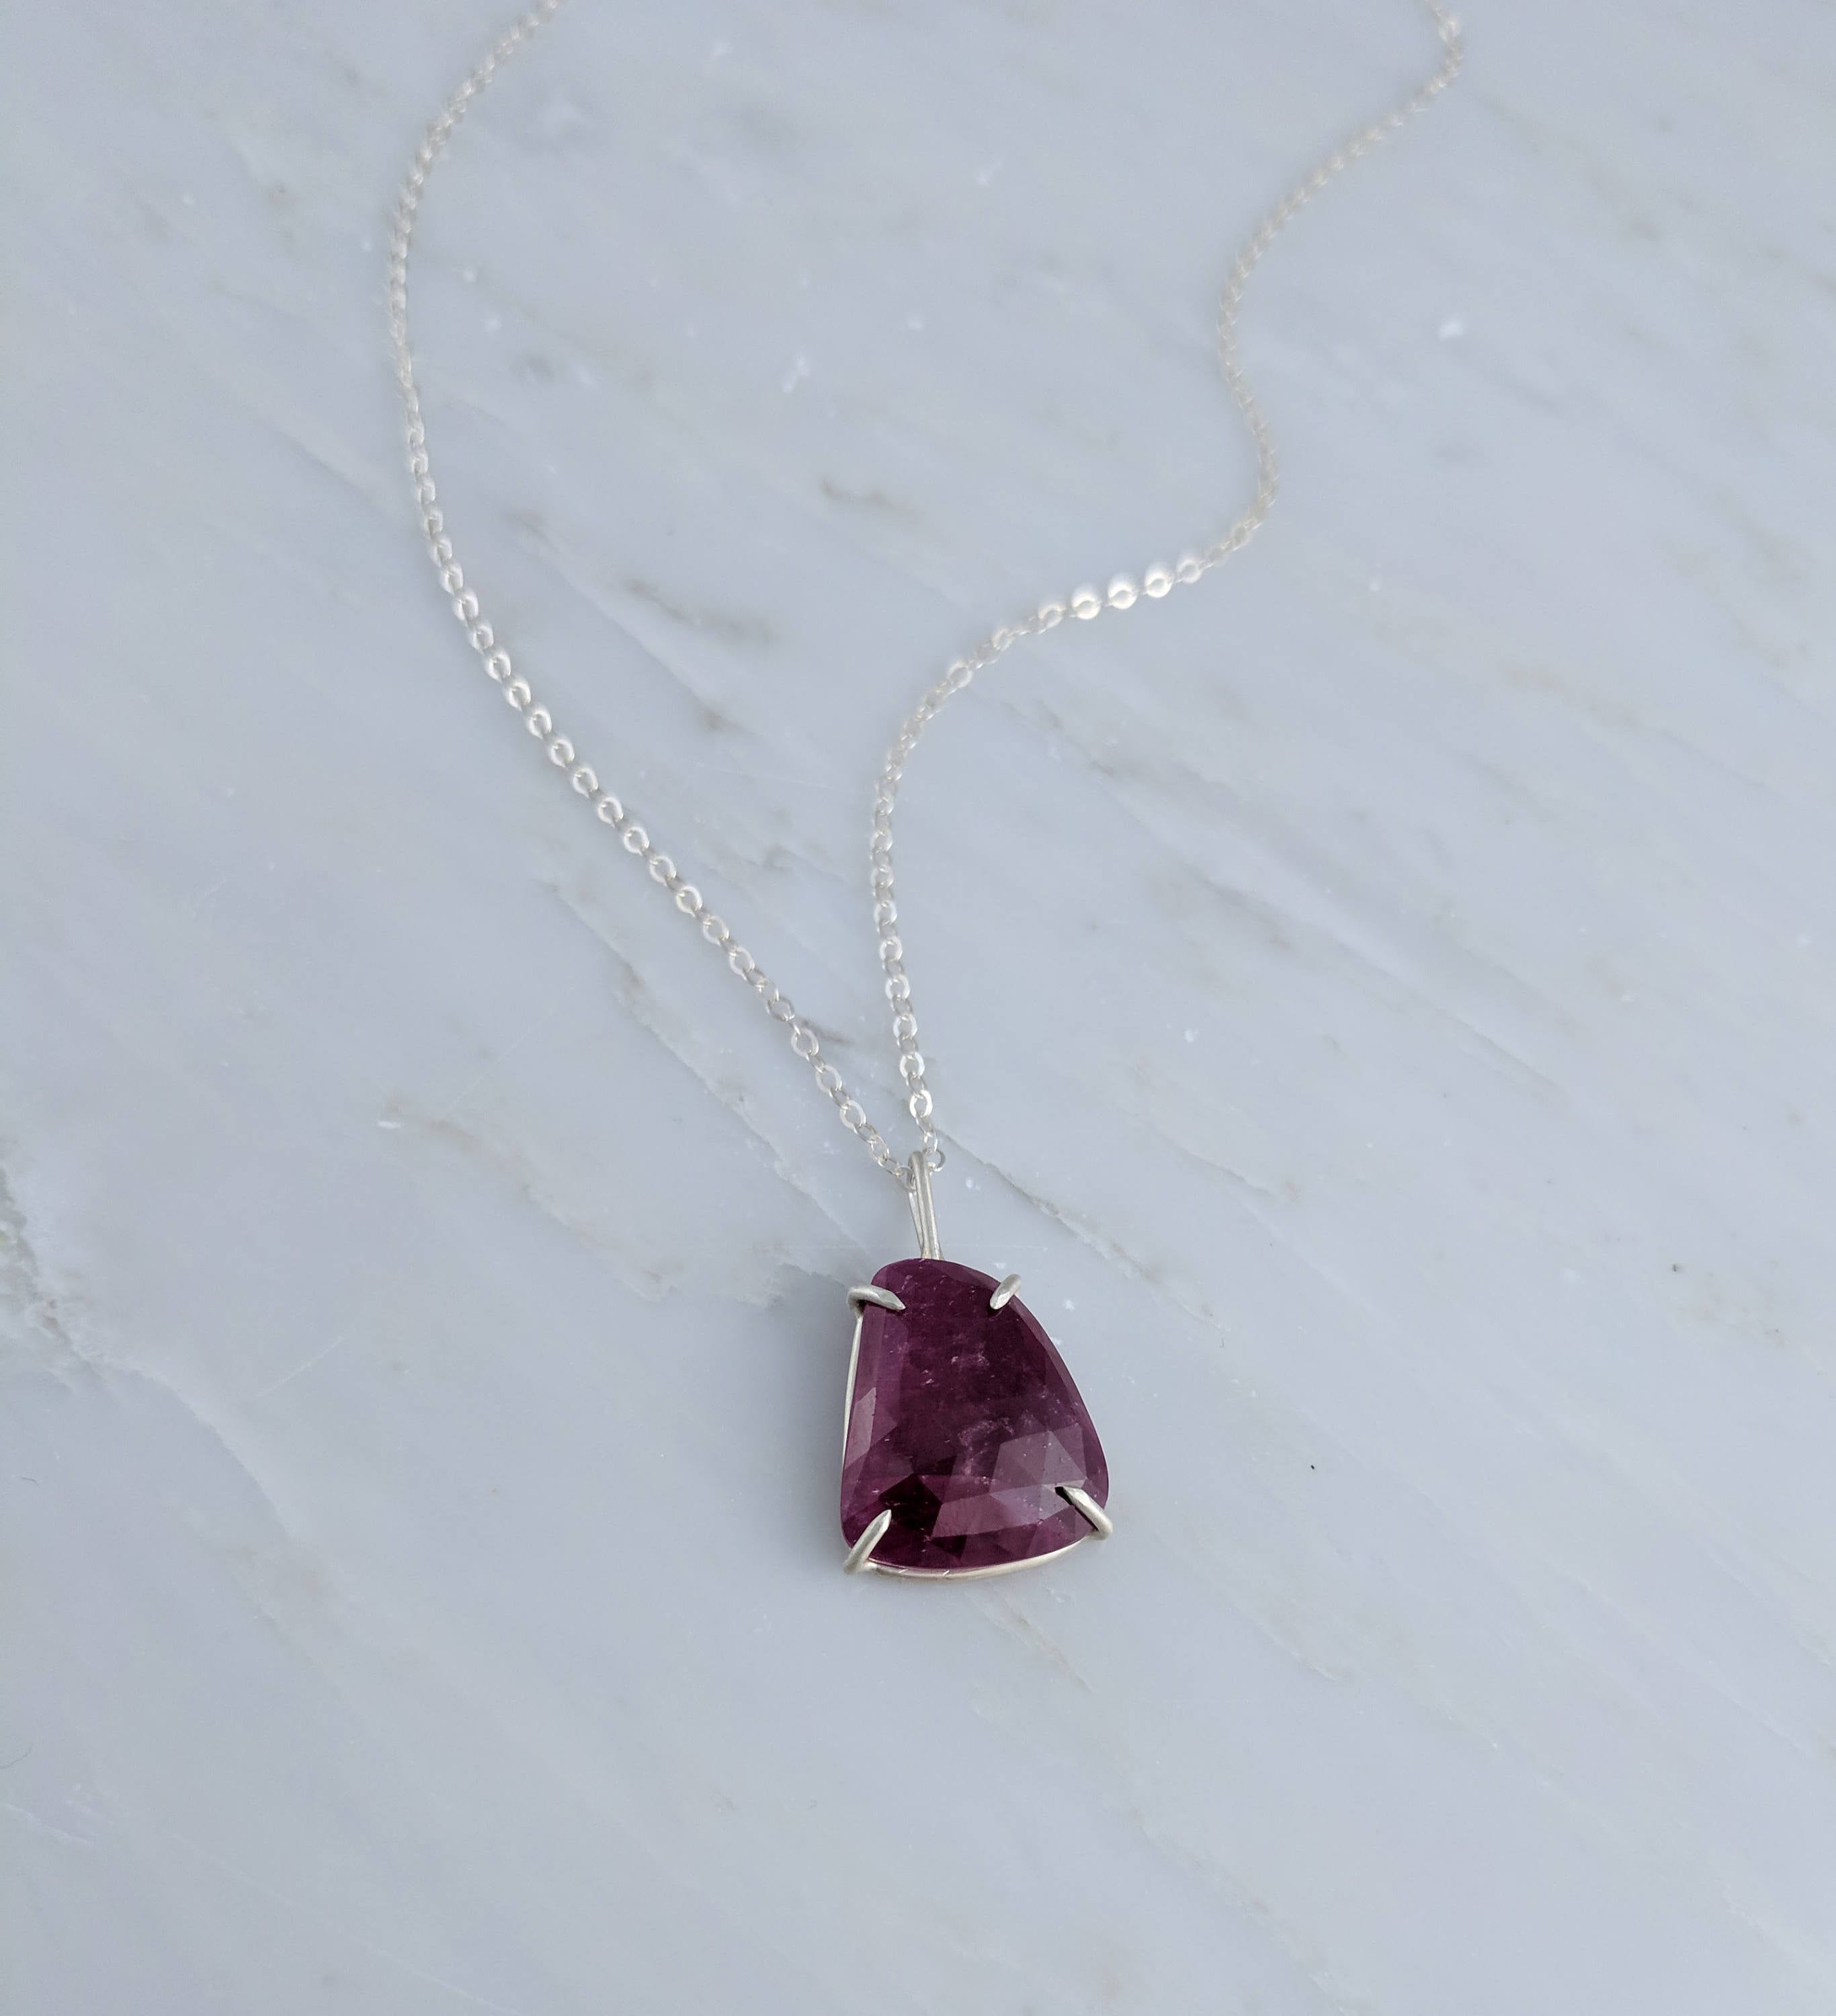 Natural Rose Cut Pink Sapphire Pendant Necklace Claw Set Sterling Silver Rustic Natural Sapphire Boho Layering Necklace Minimal Jewelry Pink